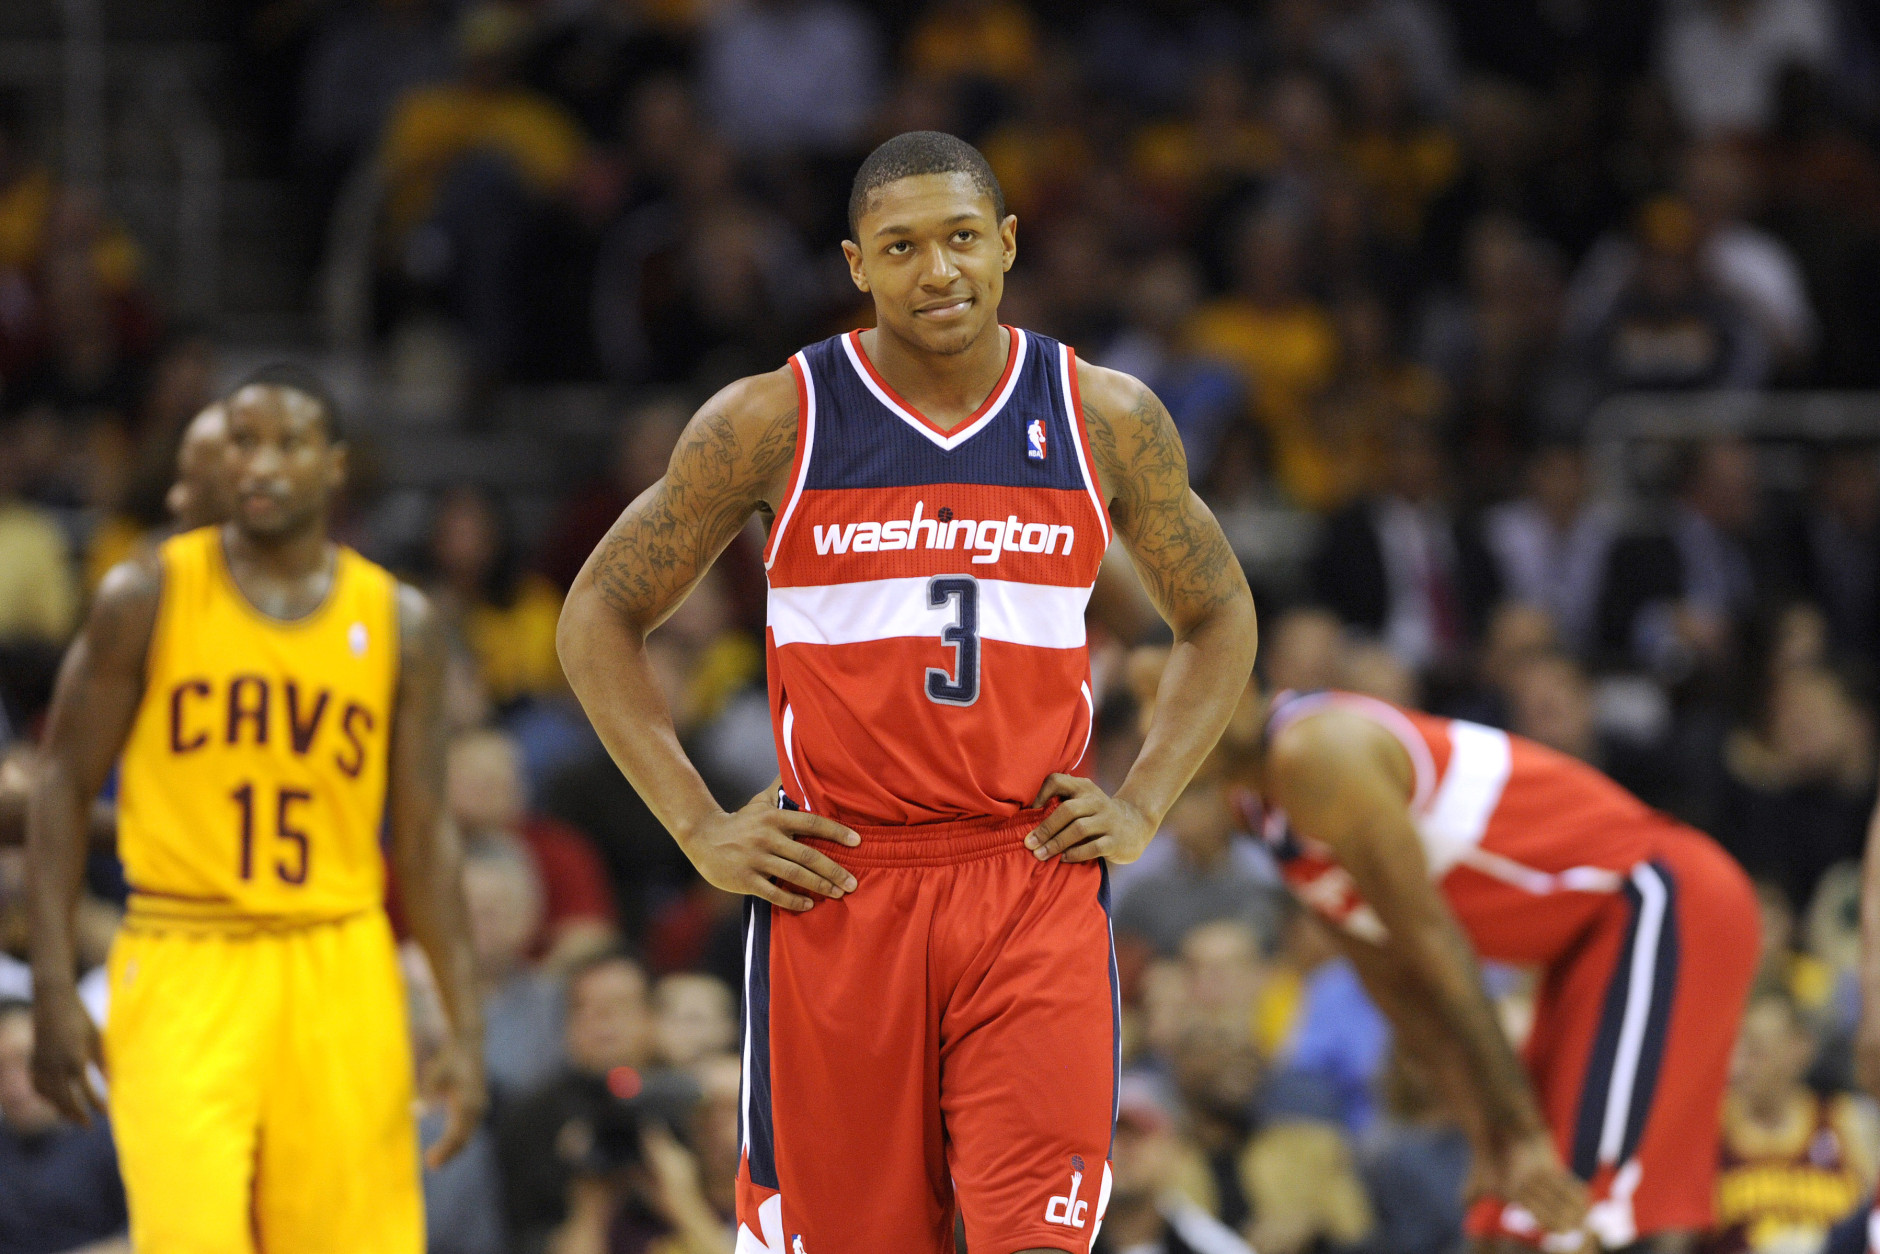 CLEVELAND, OH - OCTOBER 30: Bradley Beal #3 of the Washington Wizards reacts on the court during the game against the Cleveland Cavaliers at Quicken Loans Arena on October 30, 2012 in Cleveland, Ohio. The Cavaliers defeated the Wizards 94-84. NOTE TO USER: User expressly acknowledges and agrees that, by downloading and/or using this Photograph, user is consenting to the terms and conditions of the Getty Images License Agreement. (Photo by Jason Miller/Getty Images)